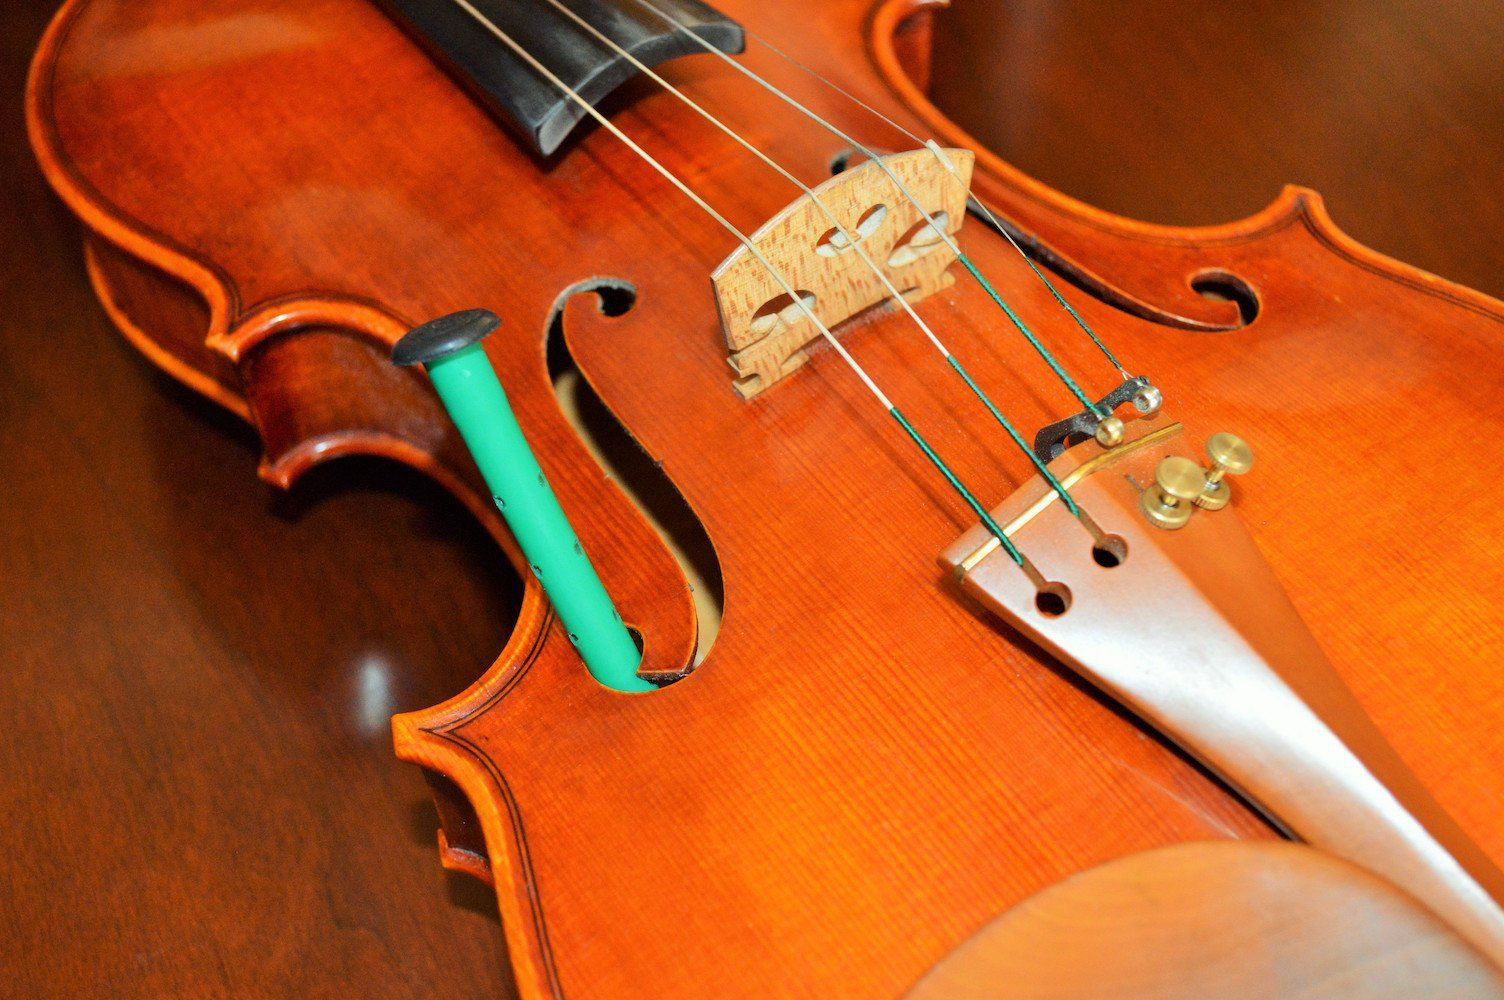 Pin on Benning Violins Articles